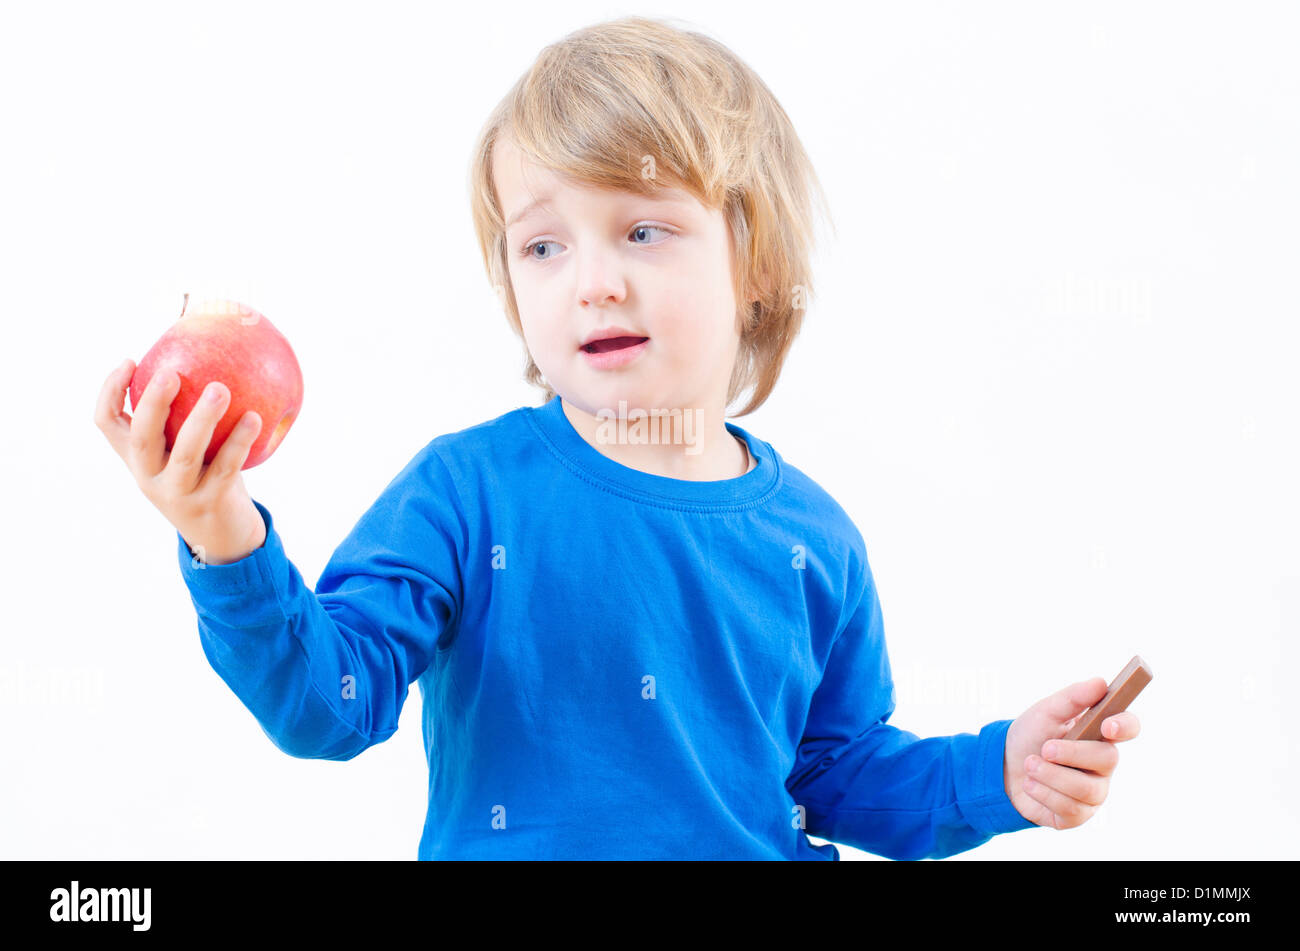 A perplexed blond boy fighting with food temptation - Stock Image